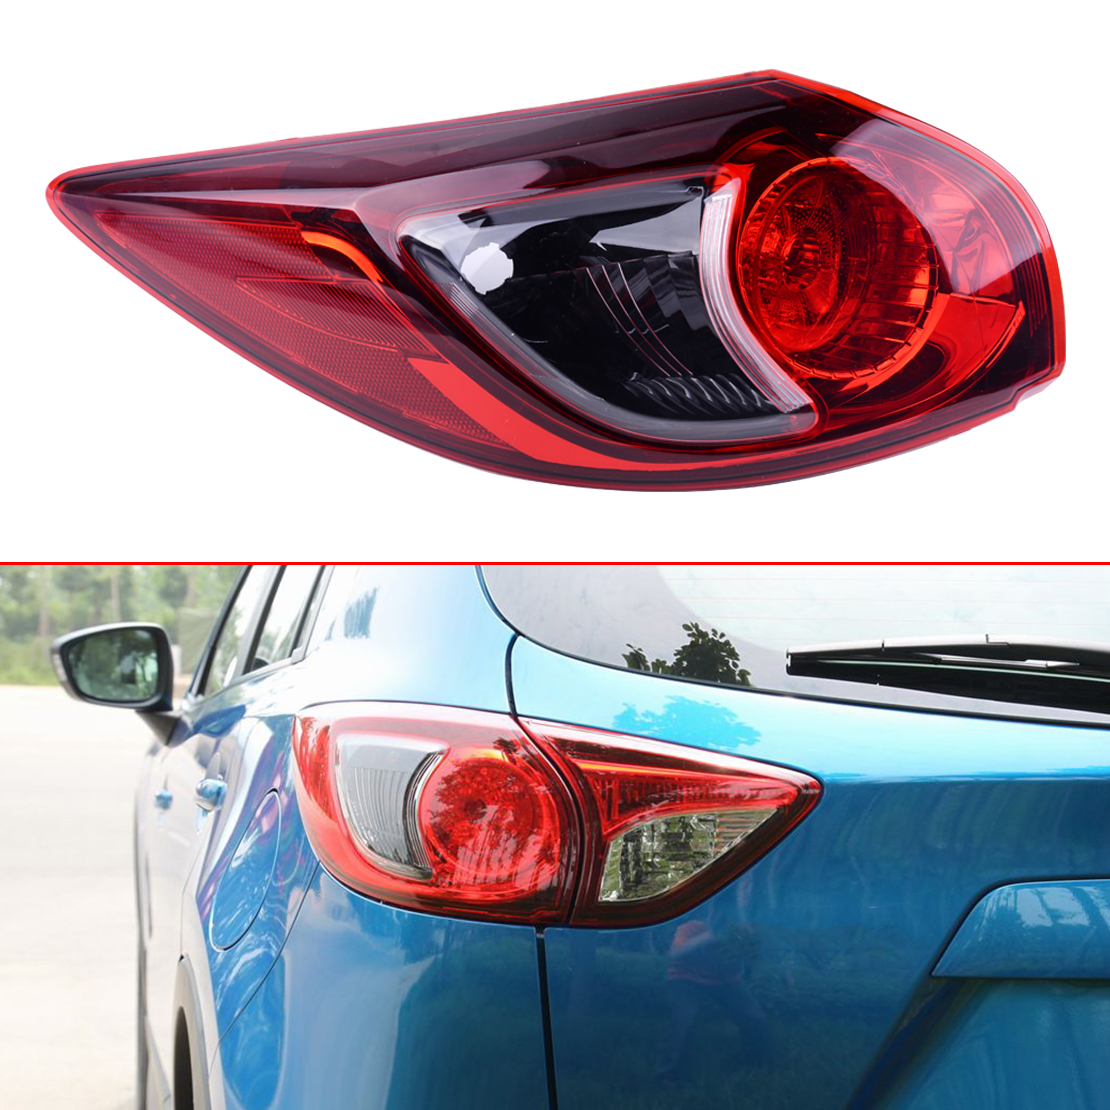 Right Side For 2013 14 15 2016 Mazda CX-5 CX5 Rear Outer Tail Lamp Brake Light